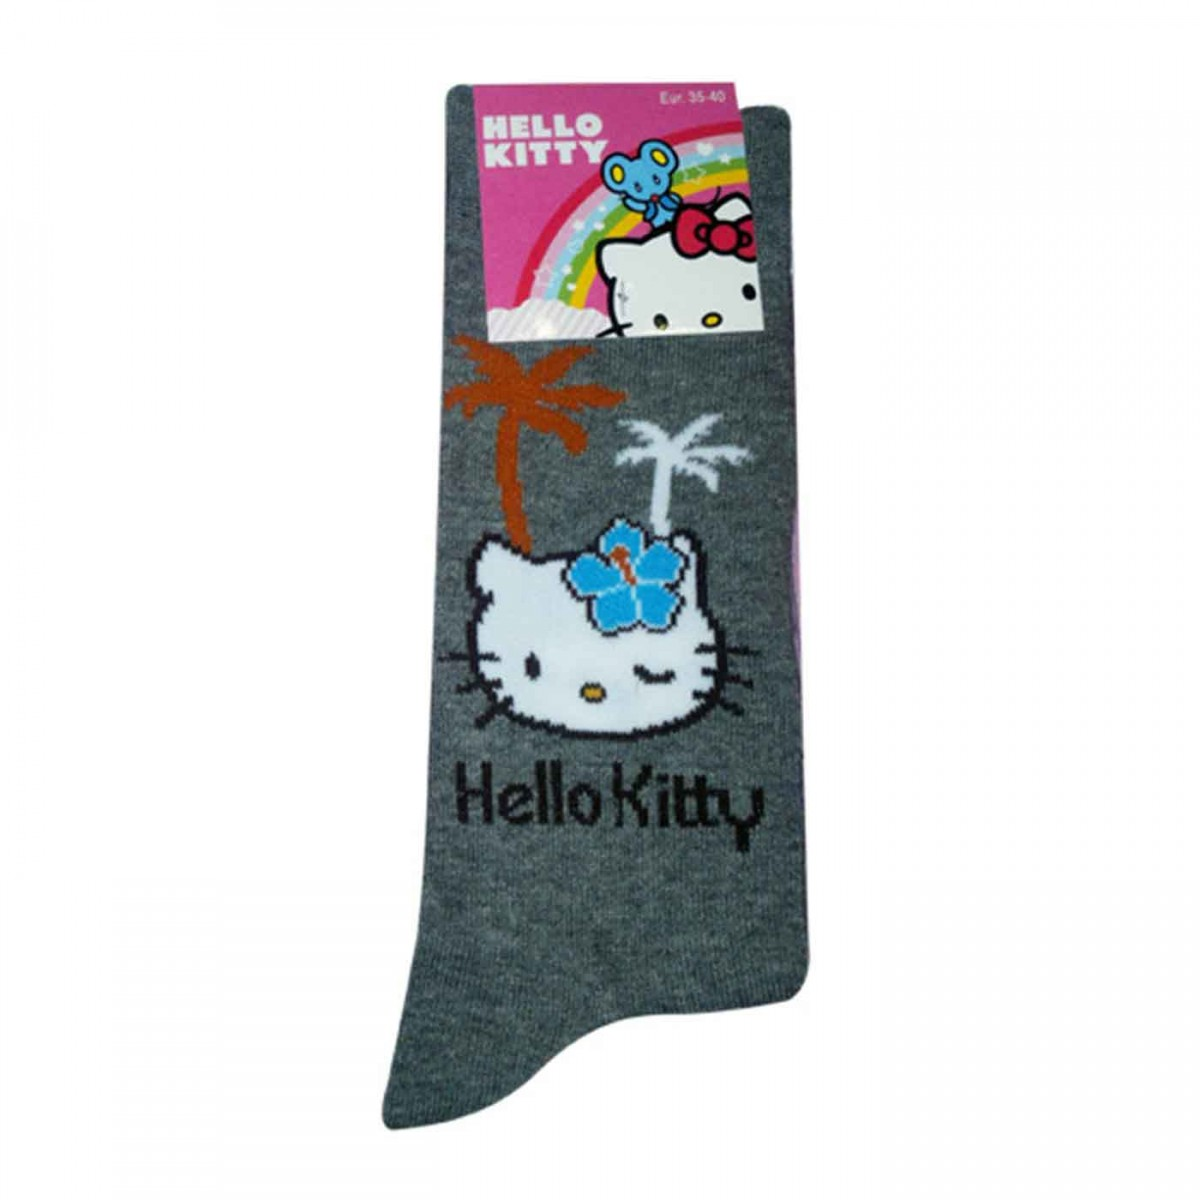 Hello Kitty Socks grey